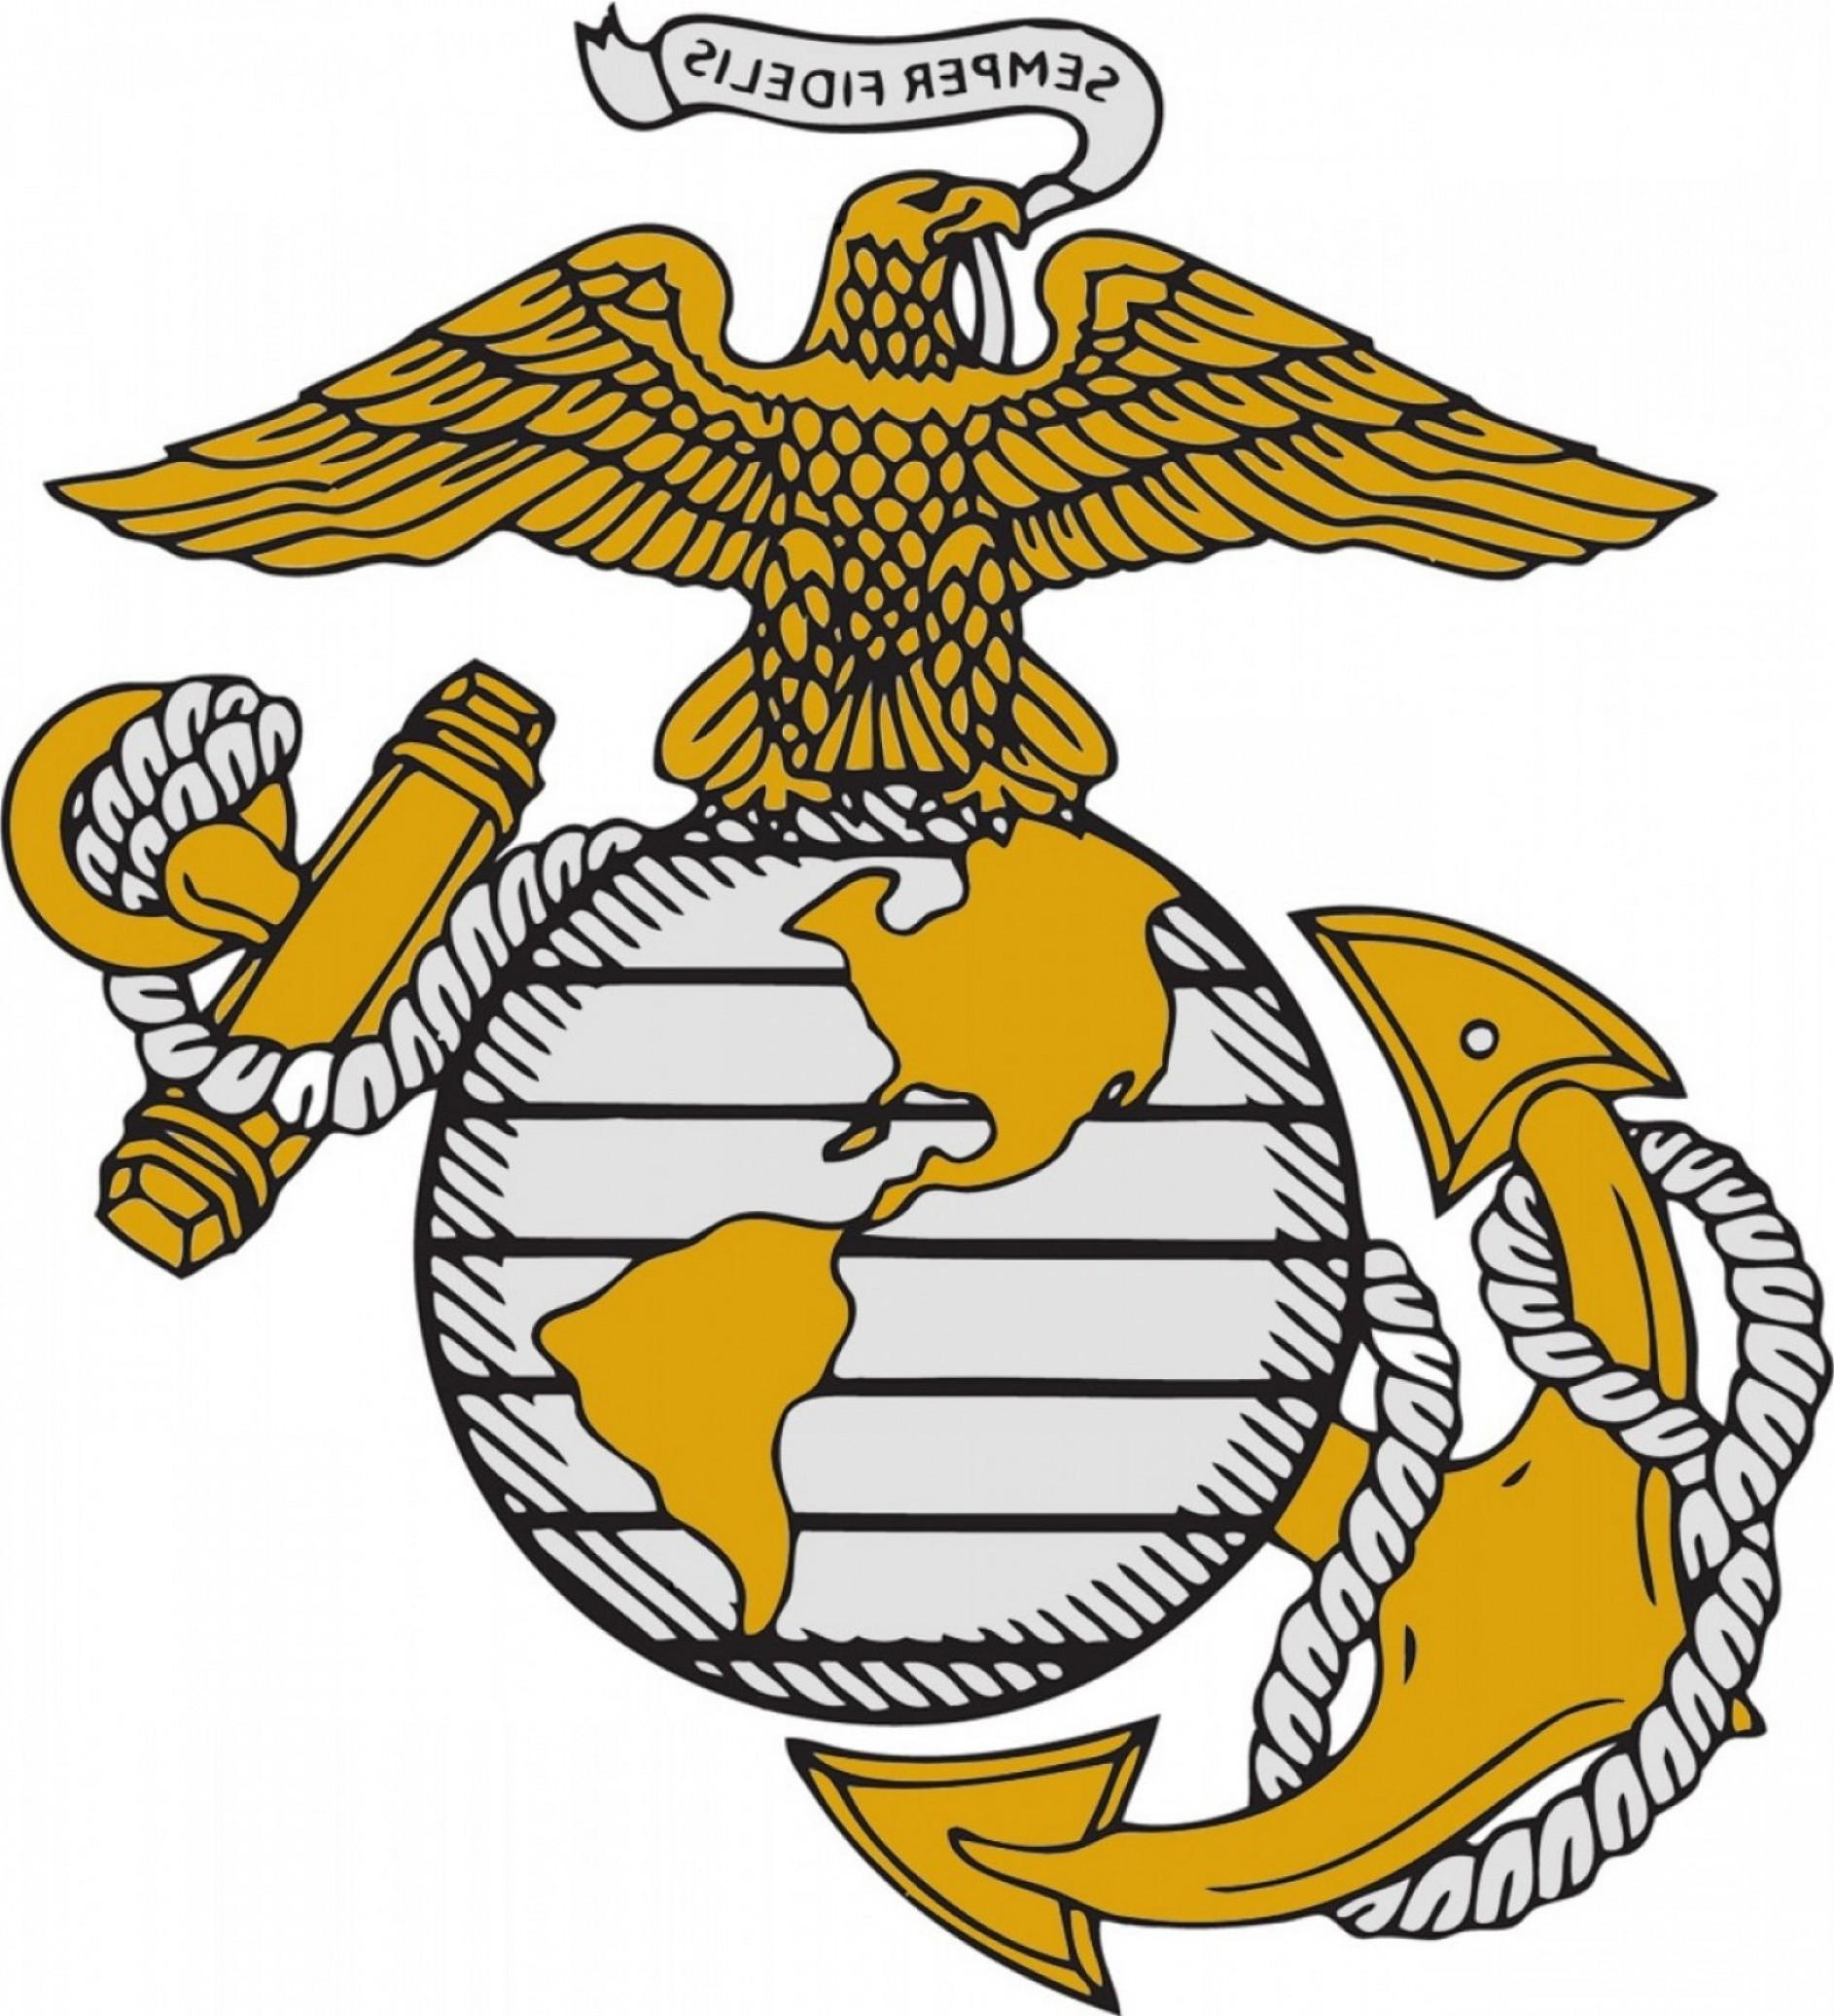 1886x2073 Extremely Marine Corps Logo Vector High Resolution Army Navy Air